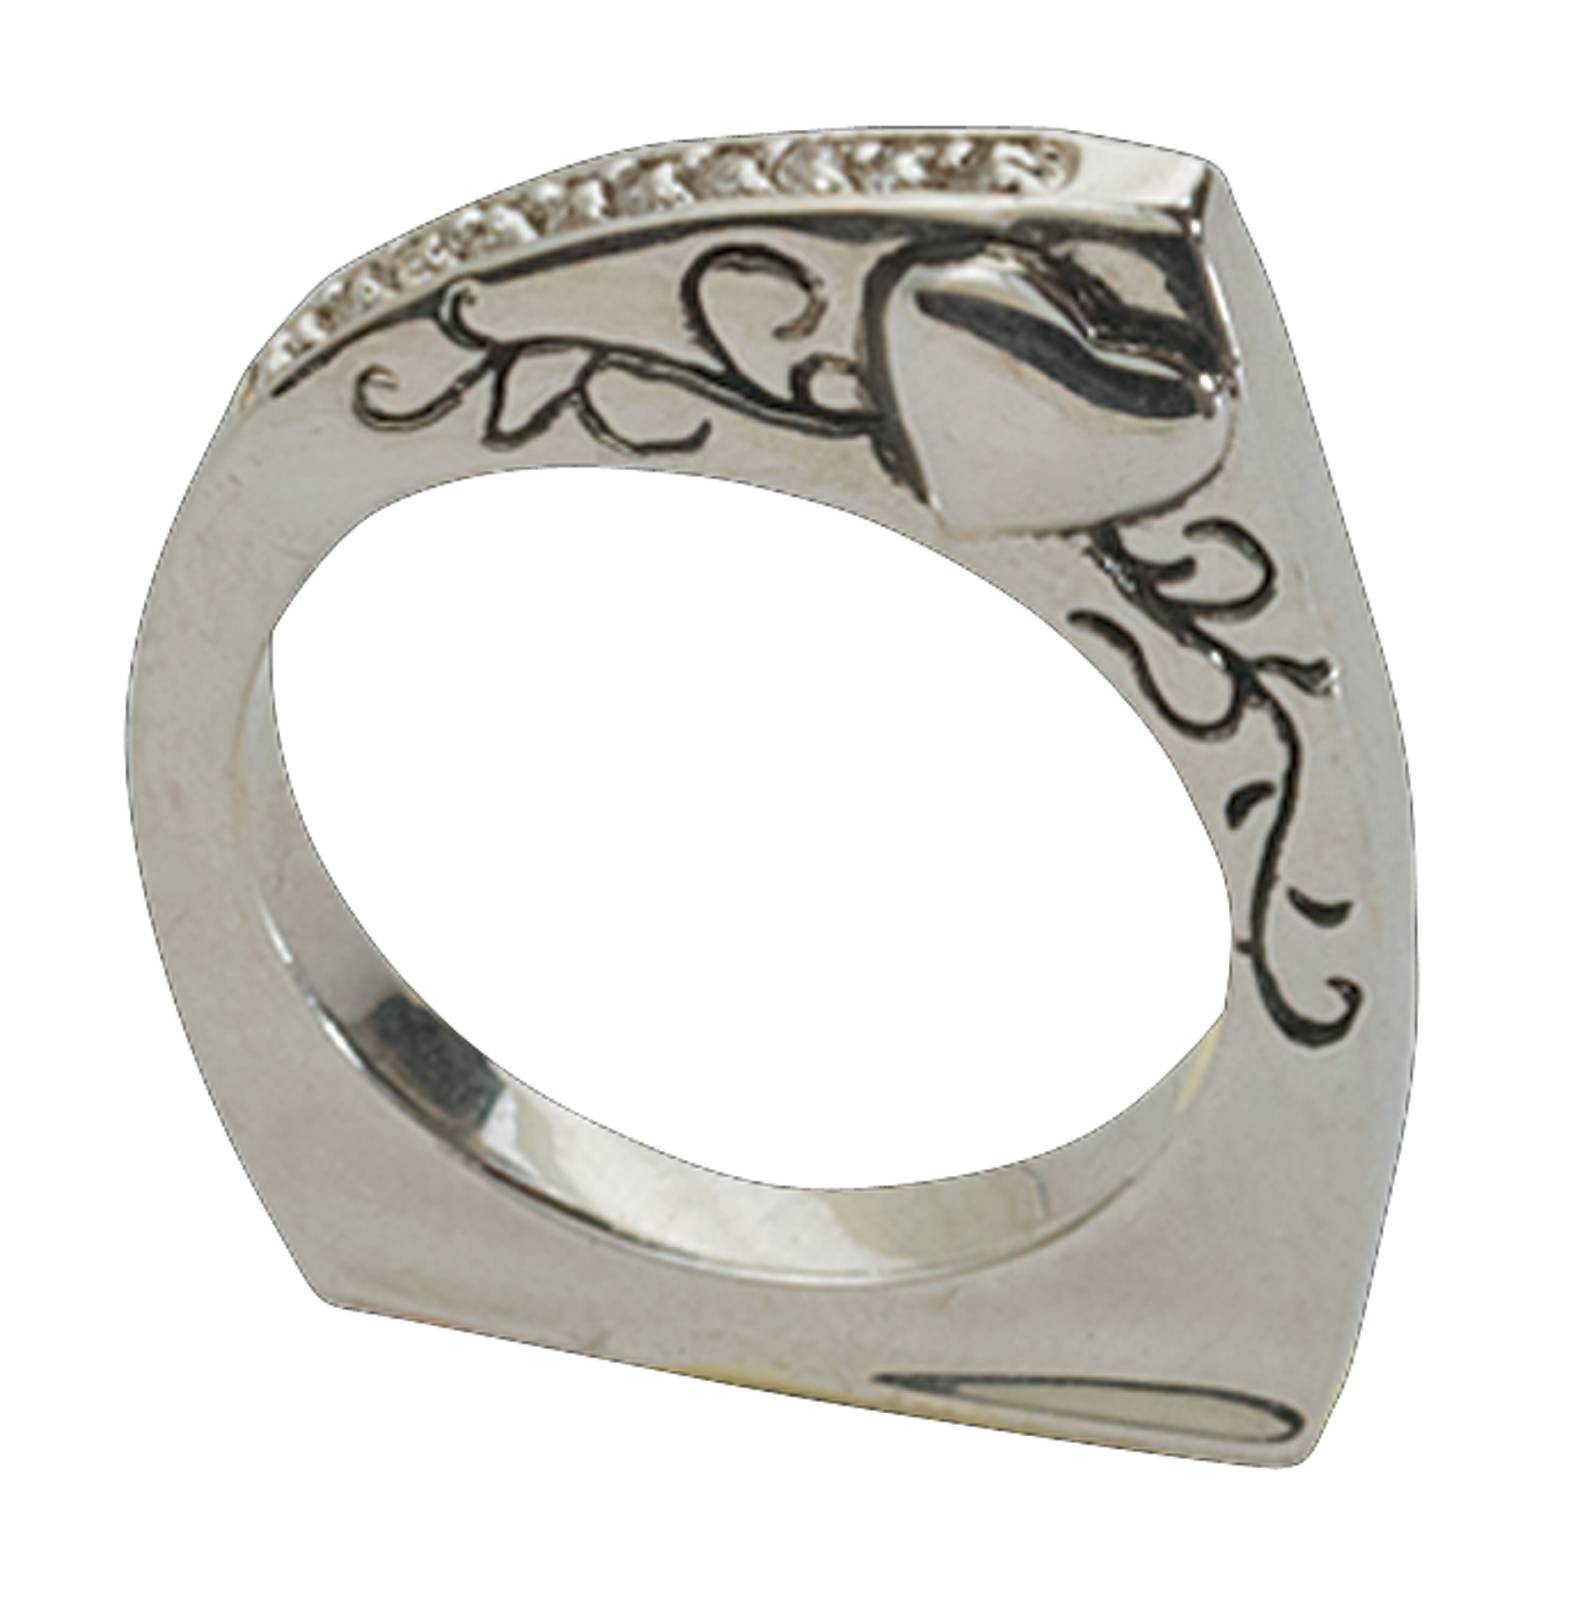 Montana Silversmiths Follow Your Heart Silver Band Ring